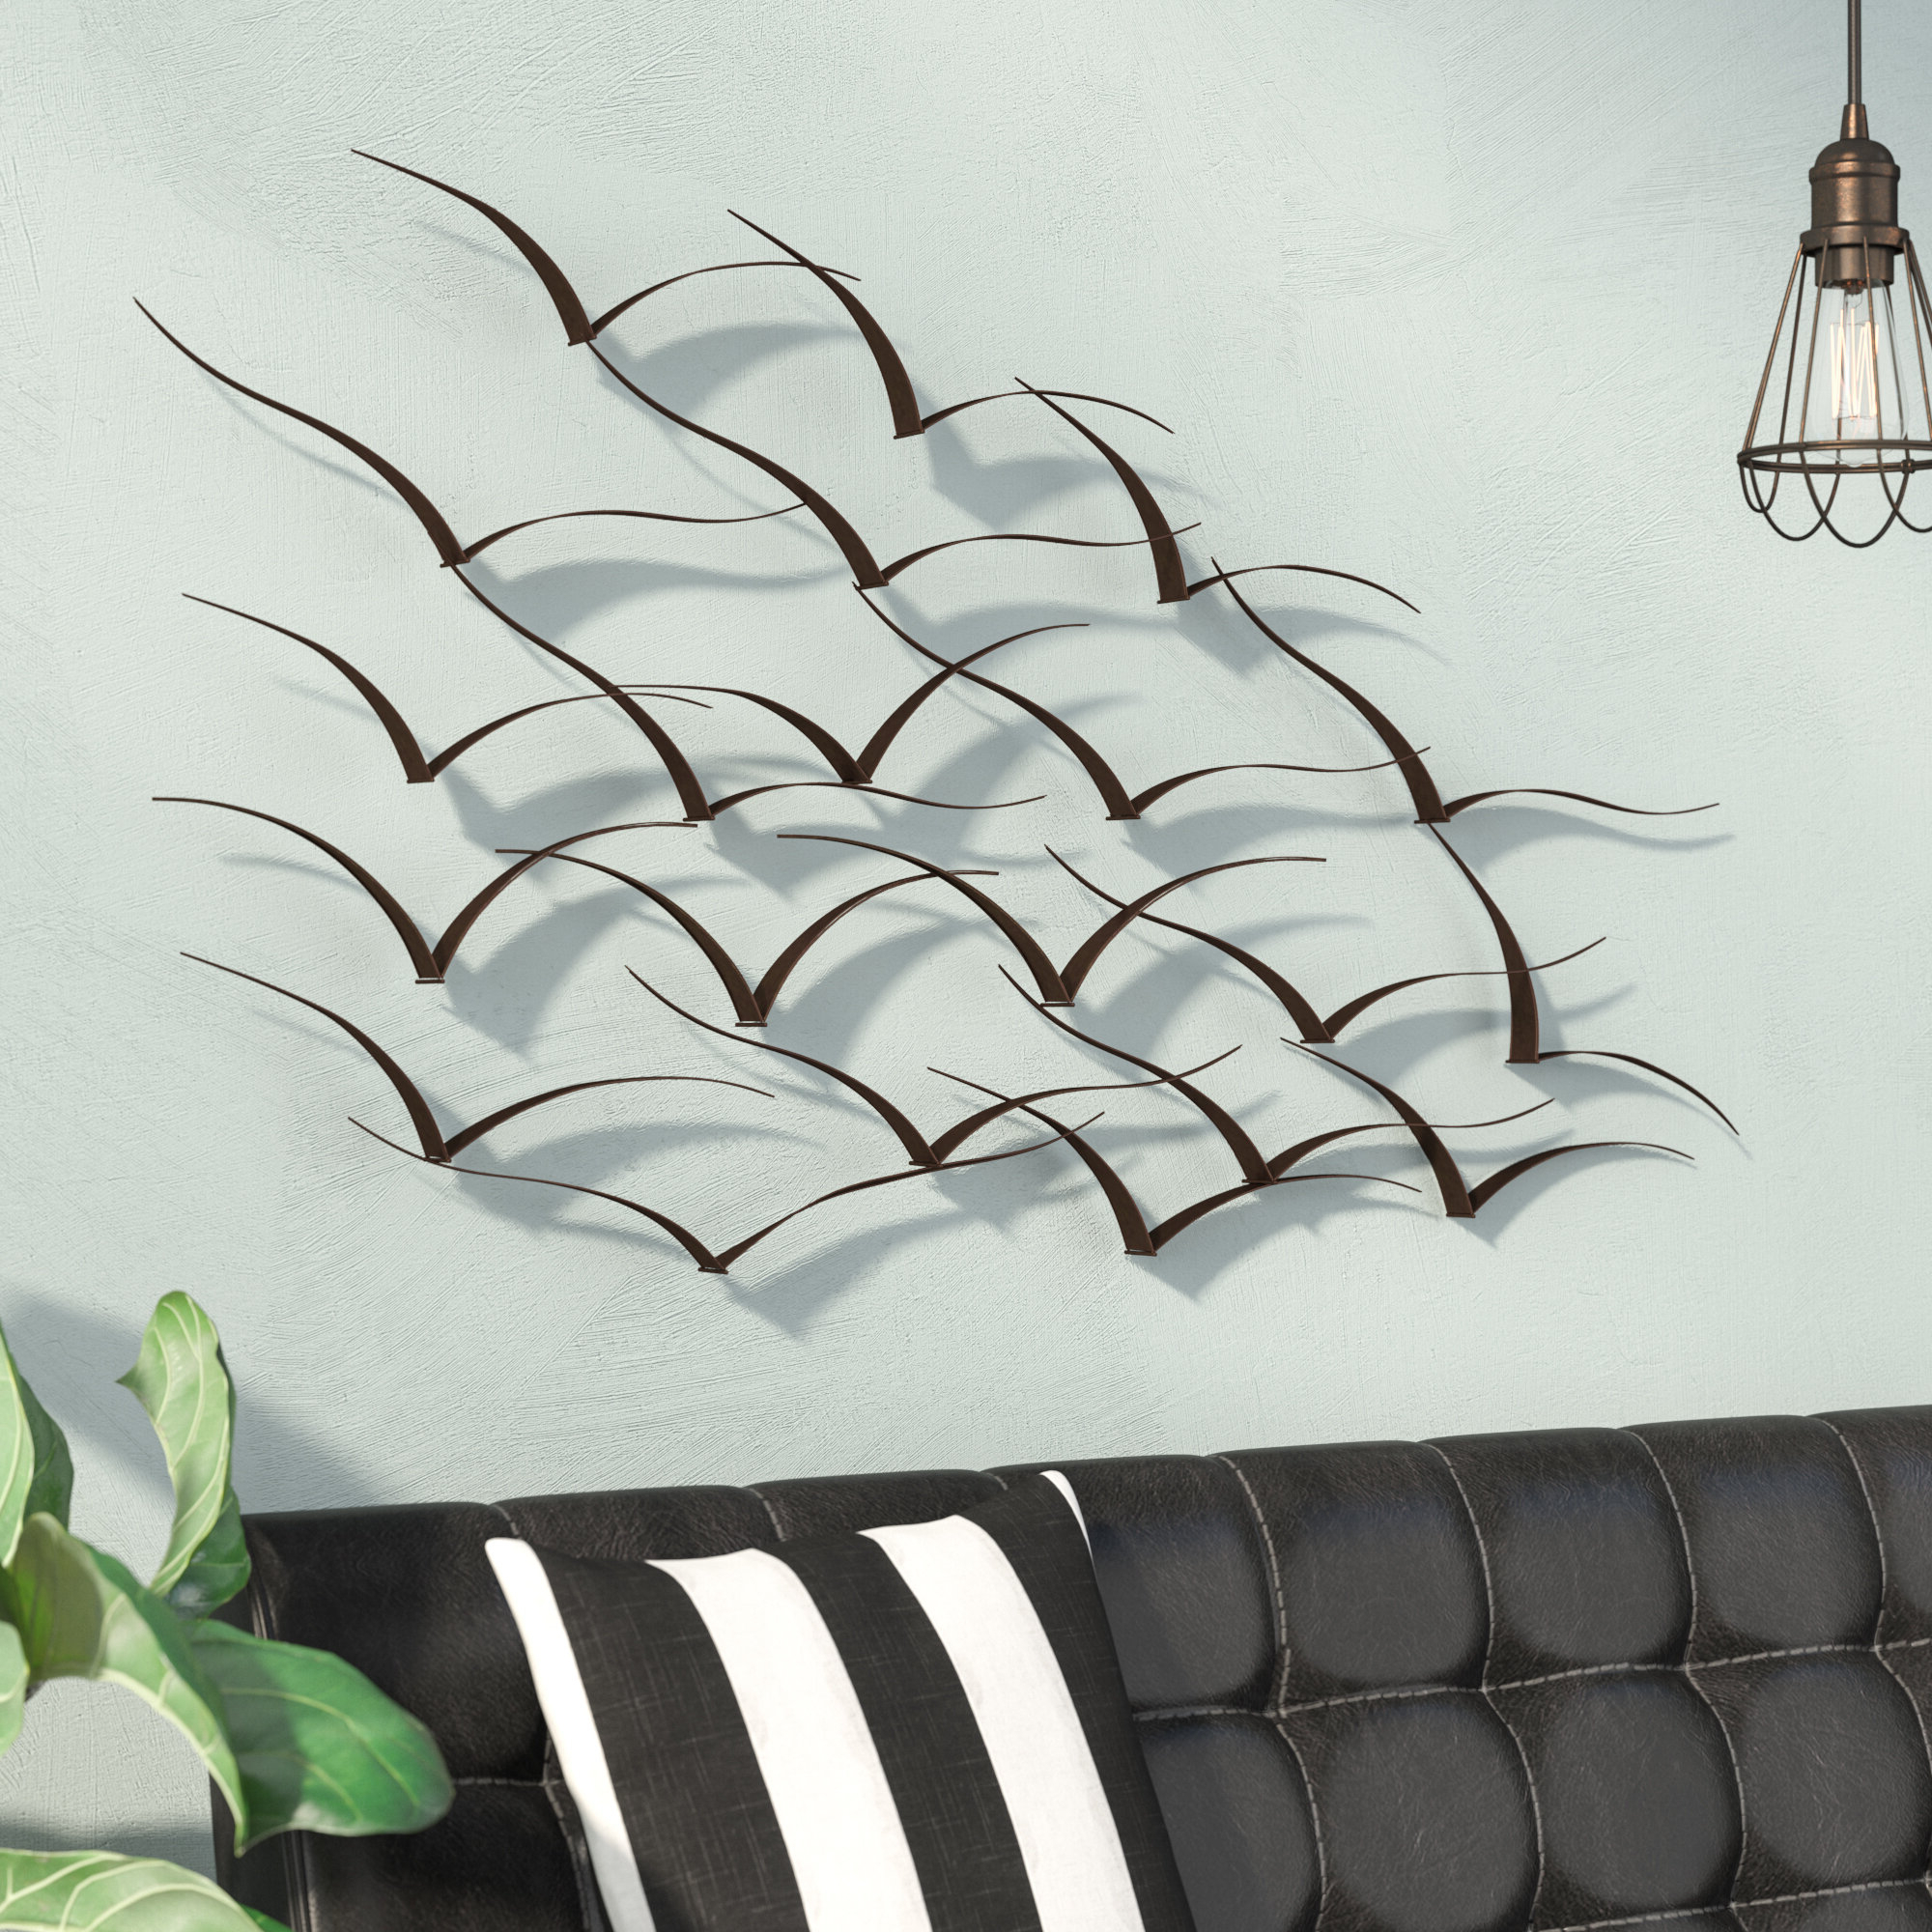 Handcrafted Flock Of Birds Metal Art Wall Décor With Regard To Famous Metal Birds Wall Décor By Beachcrest Home (View 8 of 20)